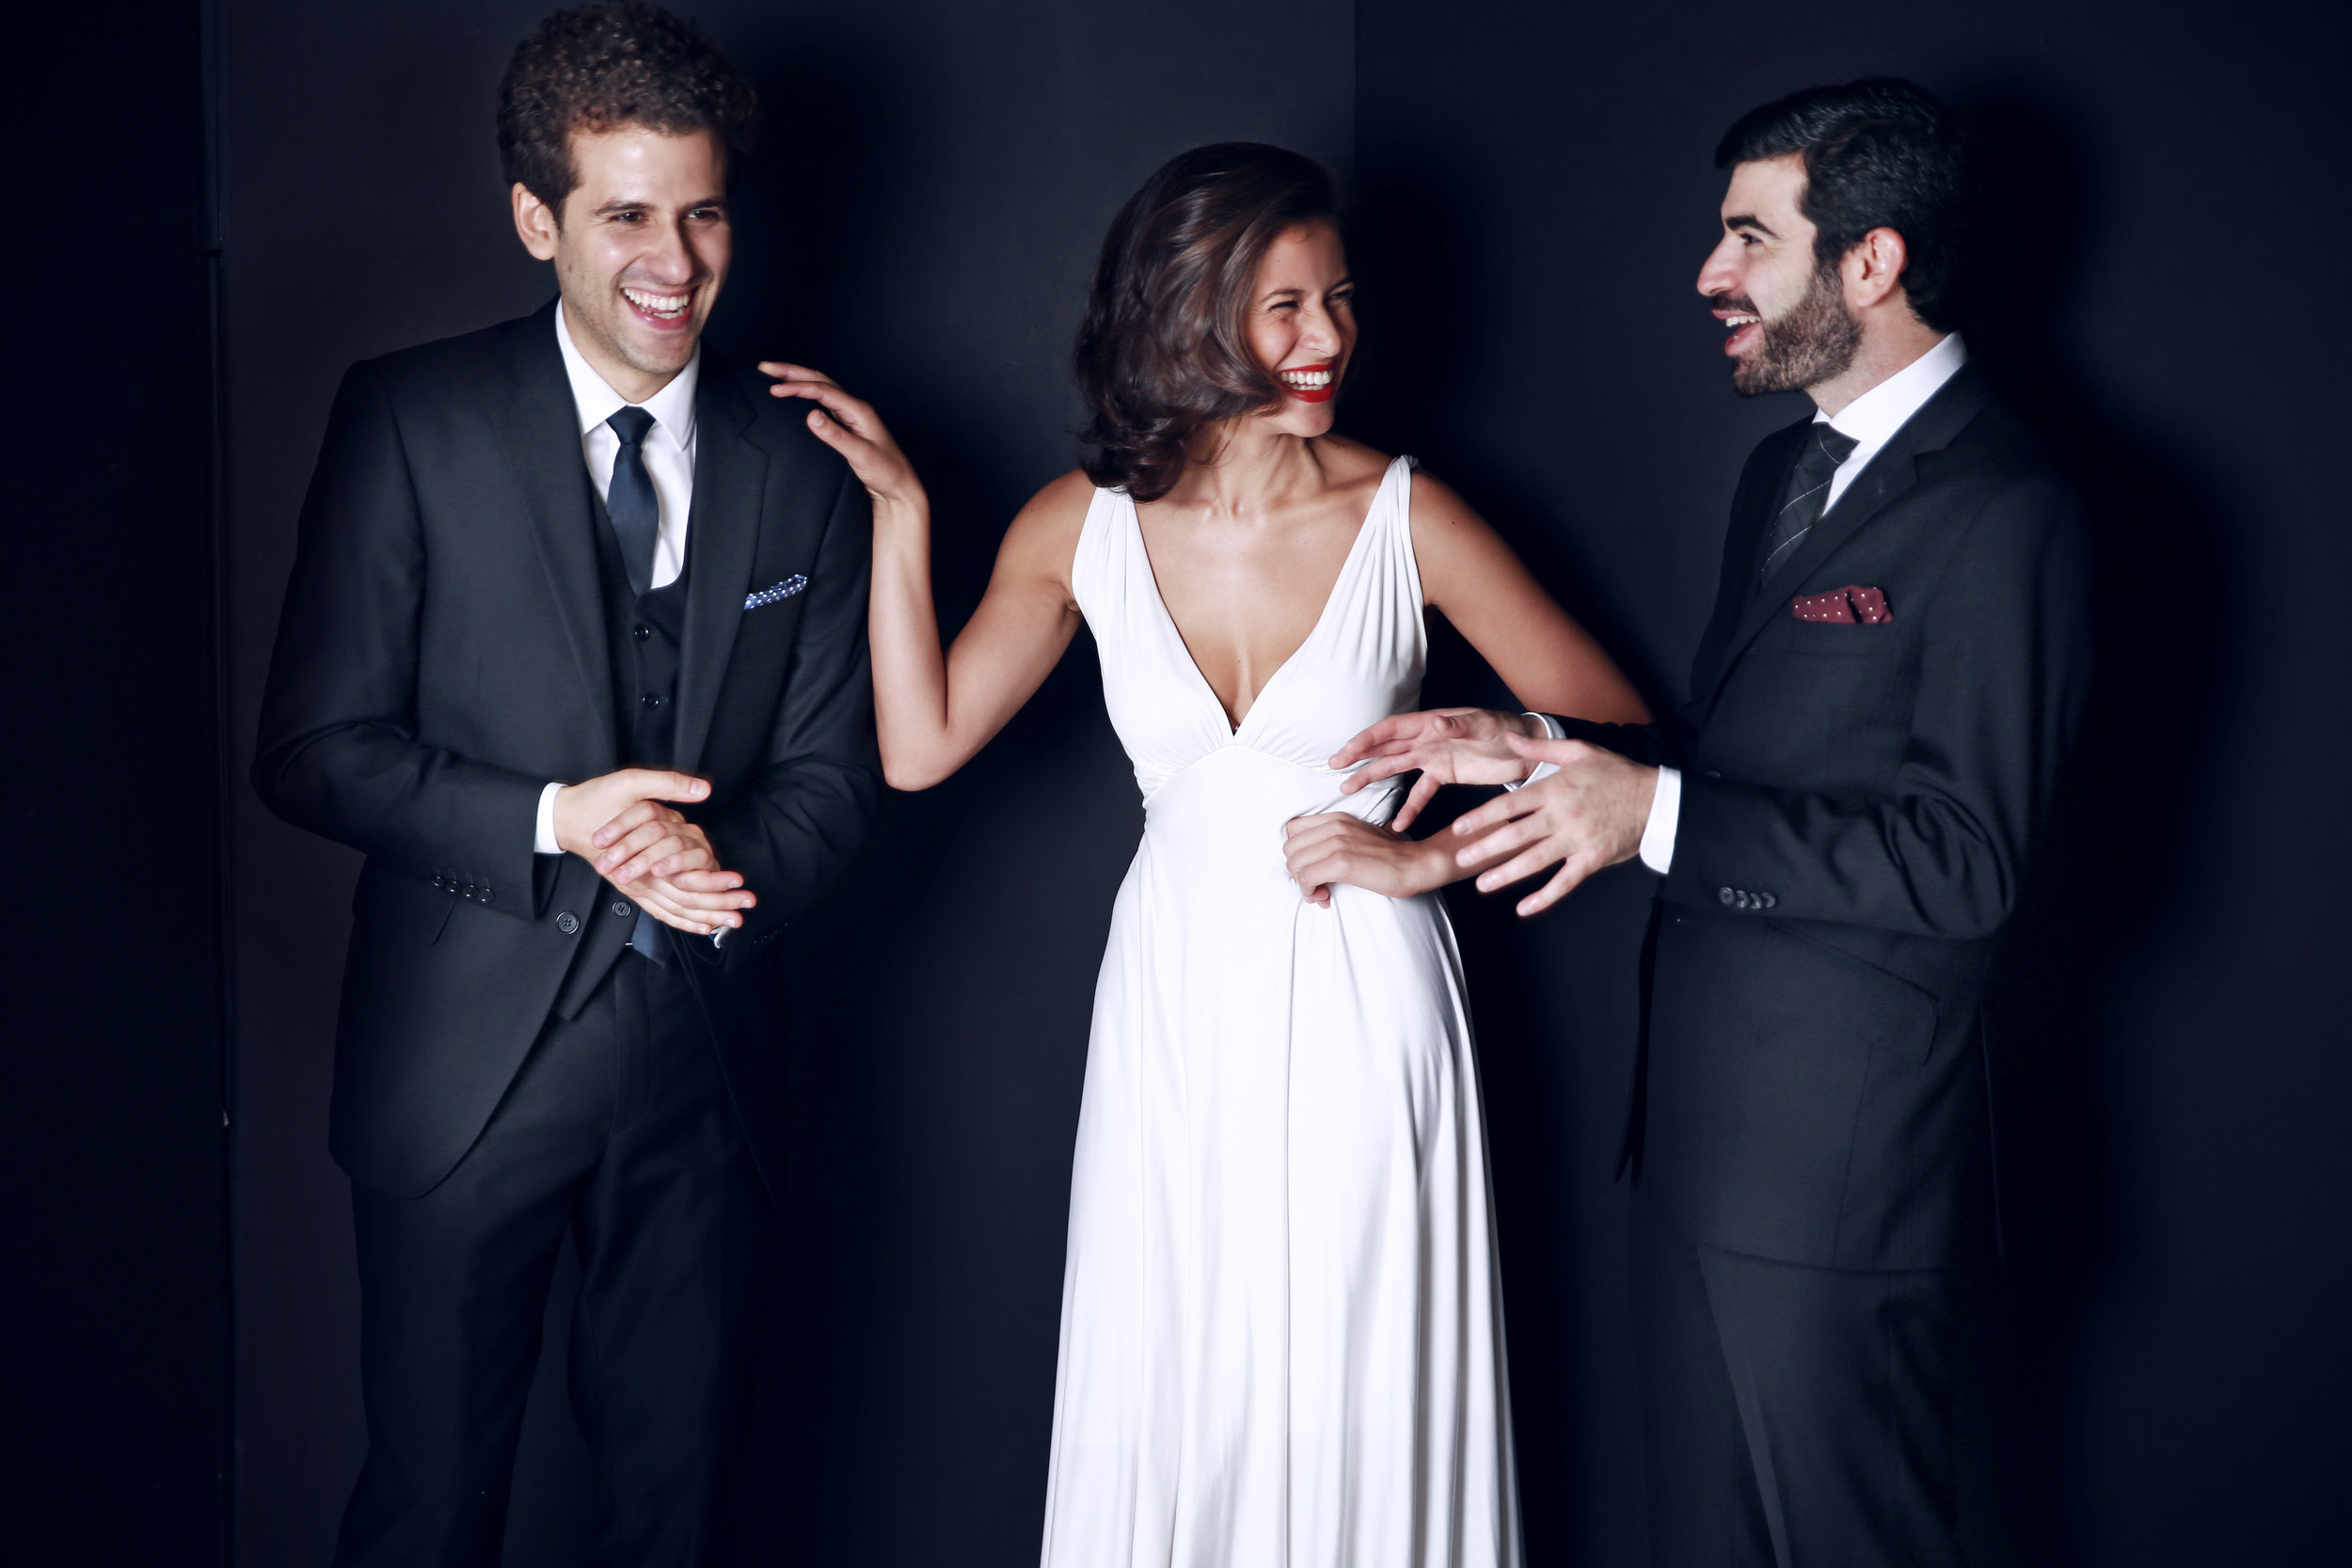 Nick Canellakis, Elena Urioste and Michael Brown